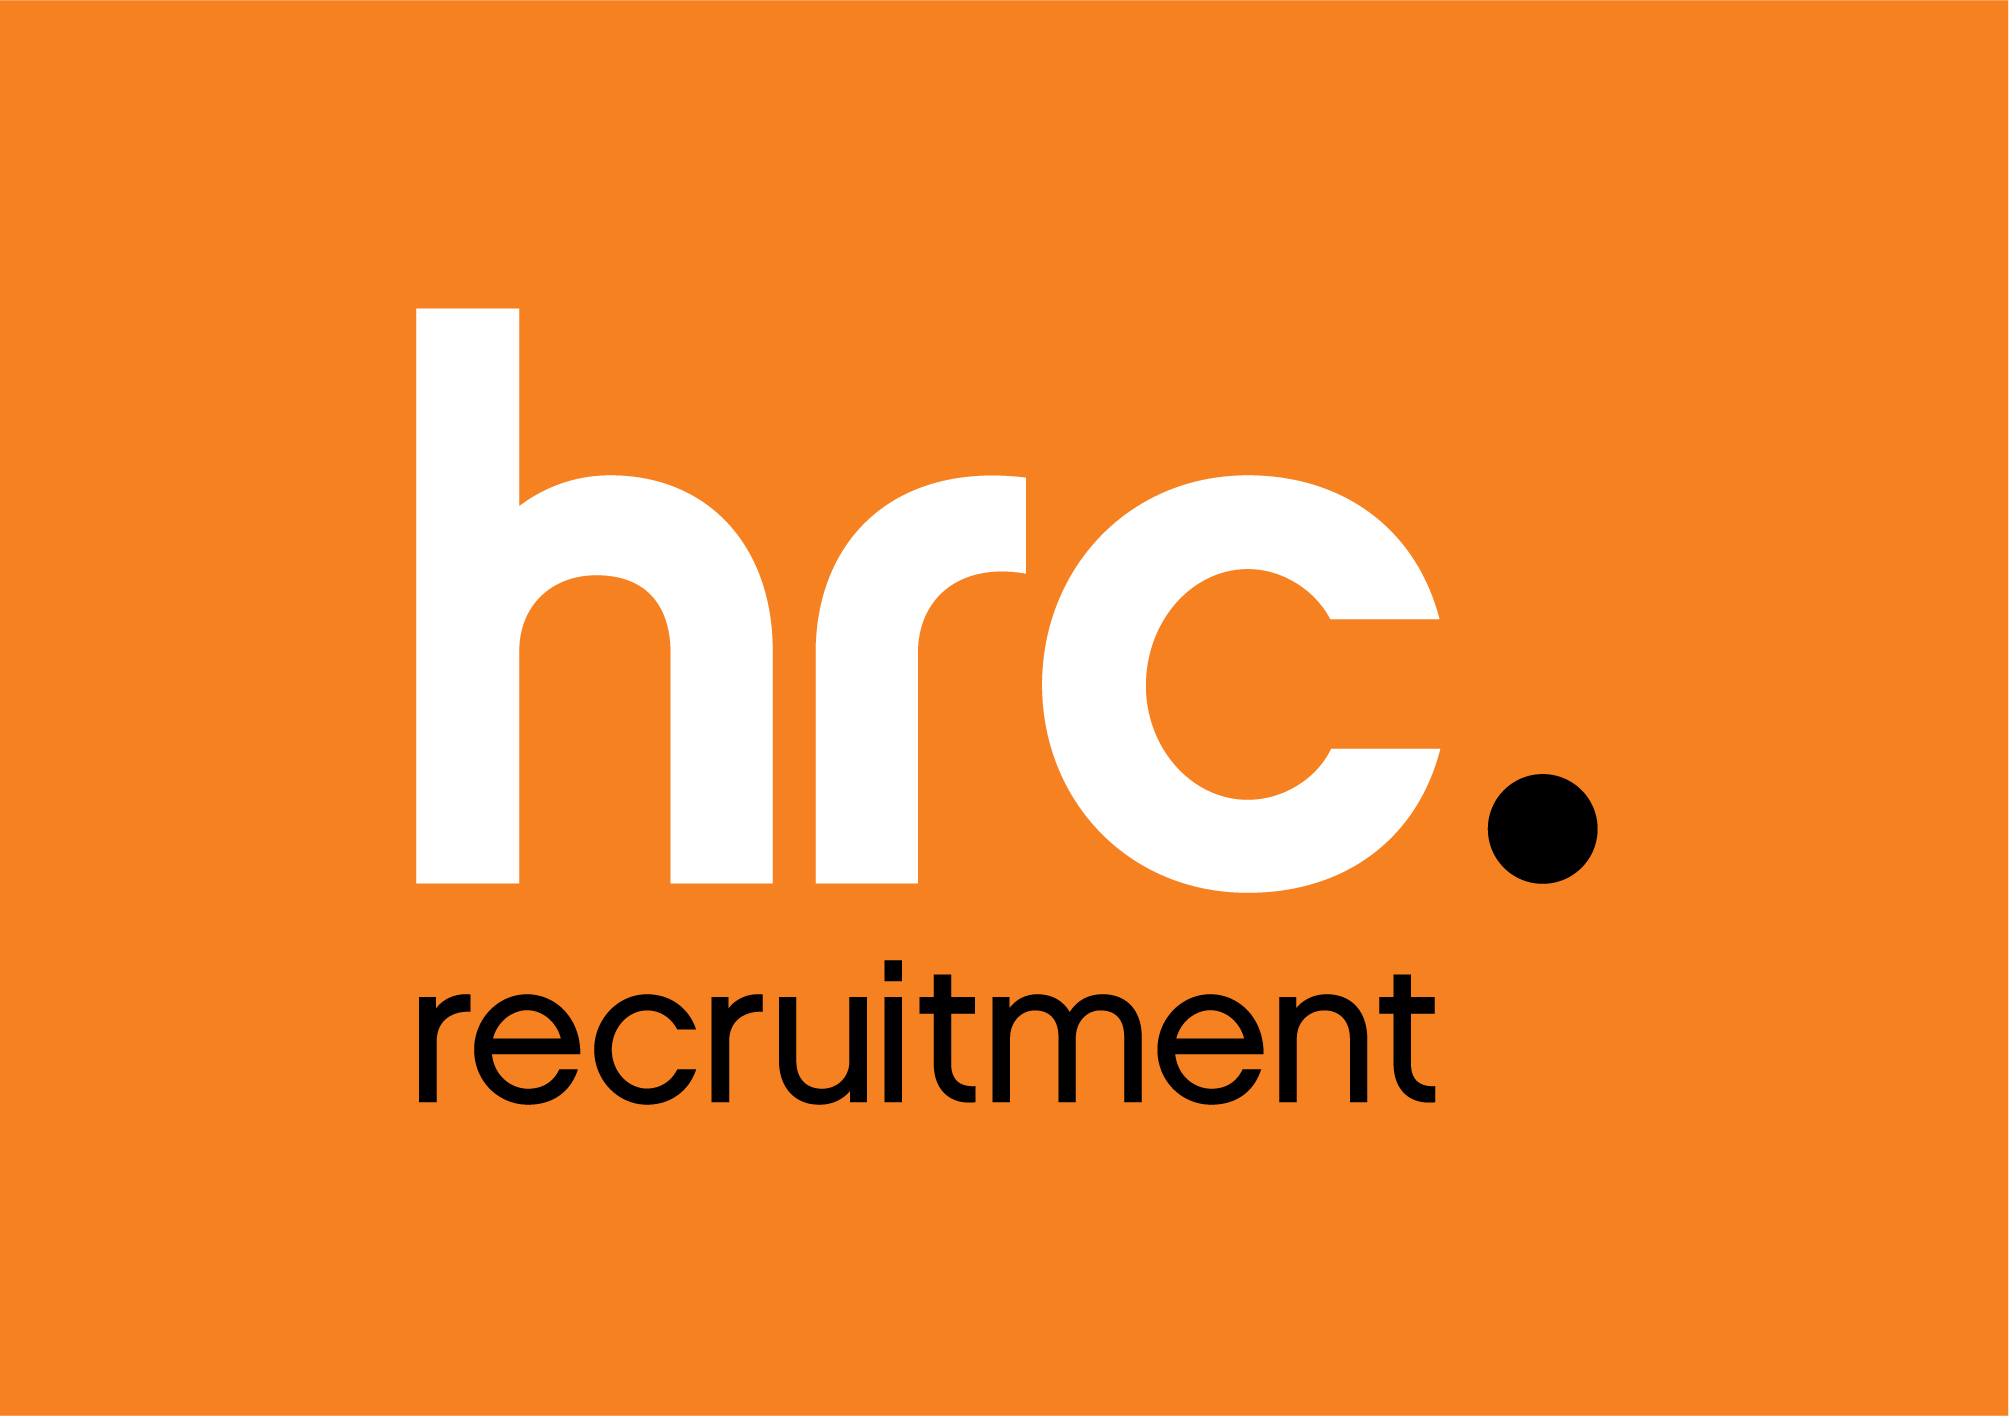 hrc recruitment